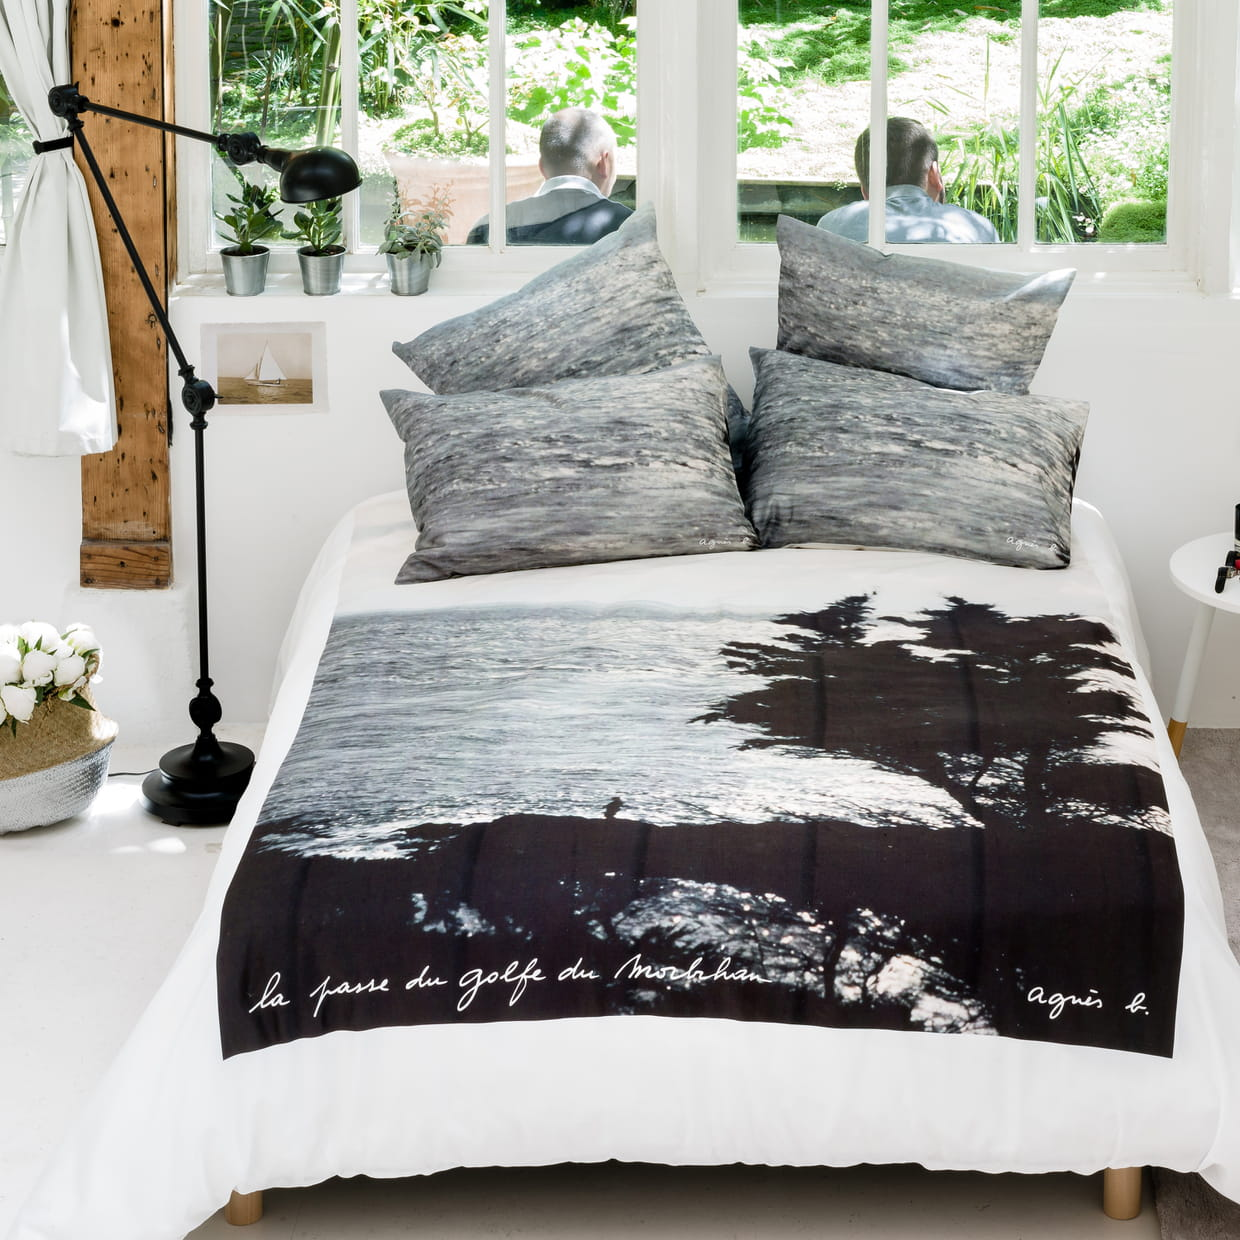 linge de lit imprim d 39 agn s b pour la redoute int rieurs. Black Bedroom Furniture Sets. Home Design Ideas